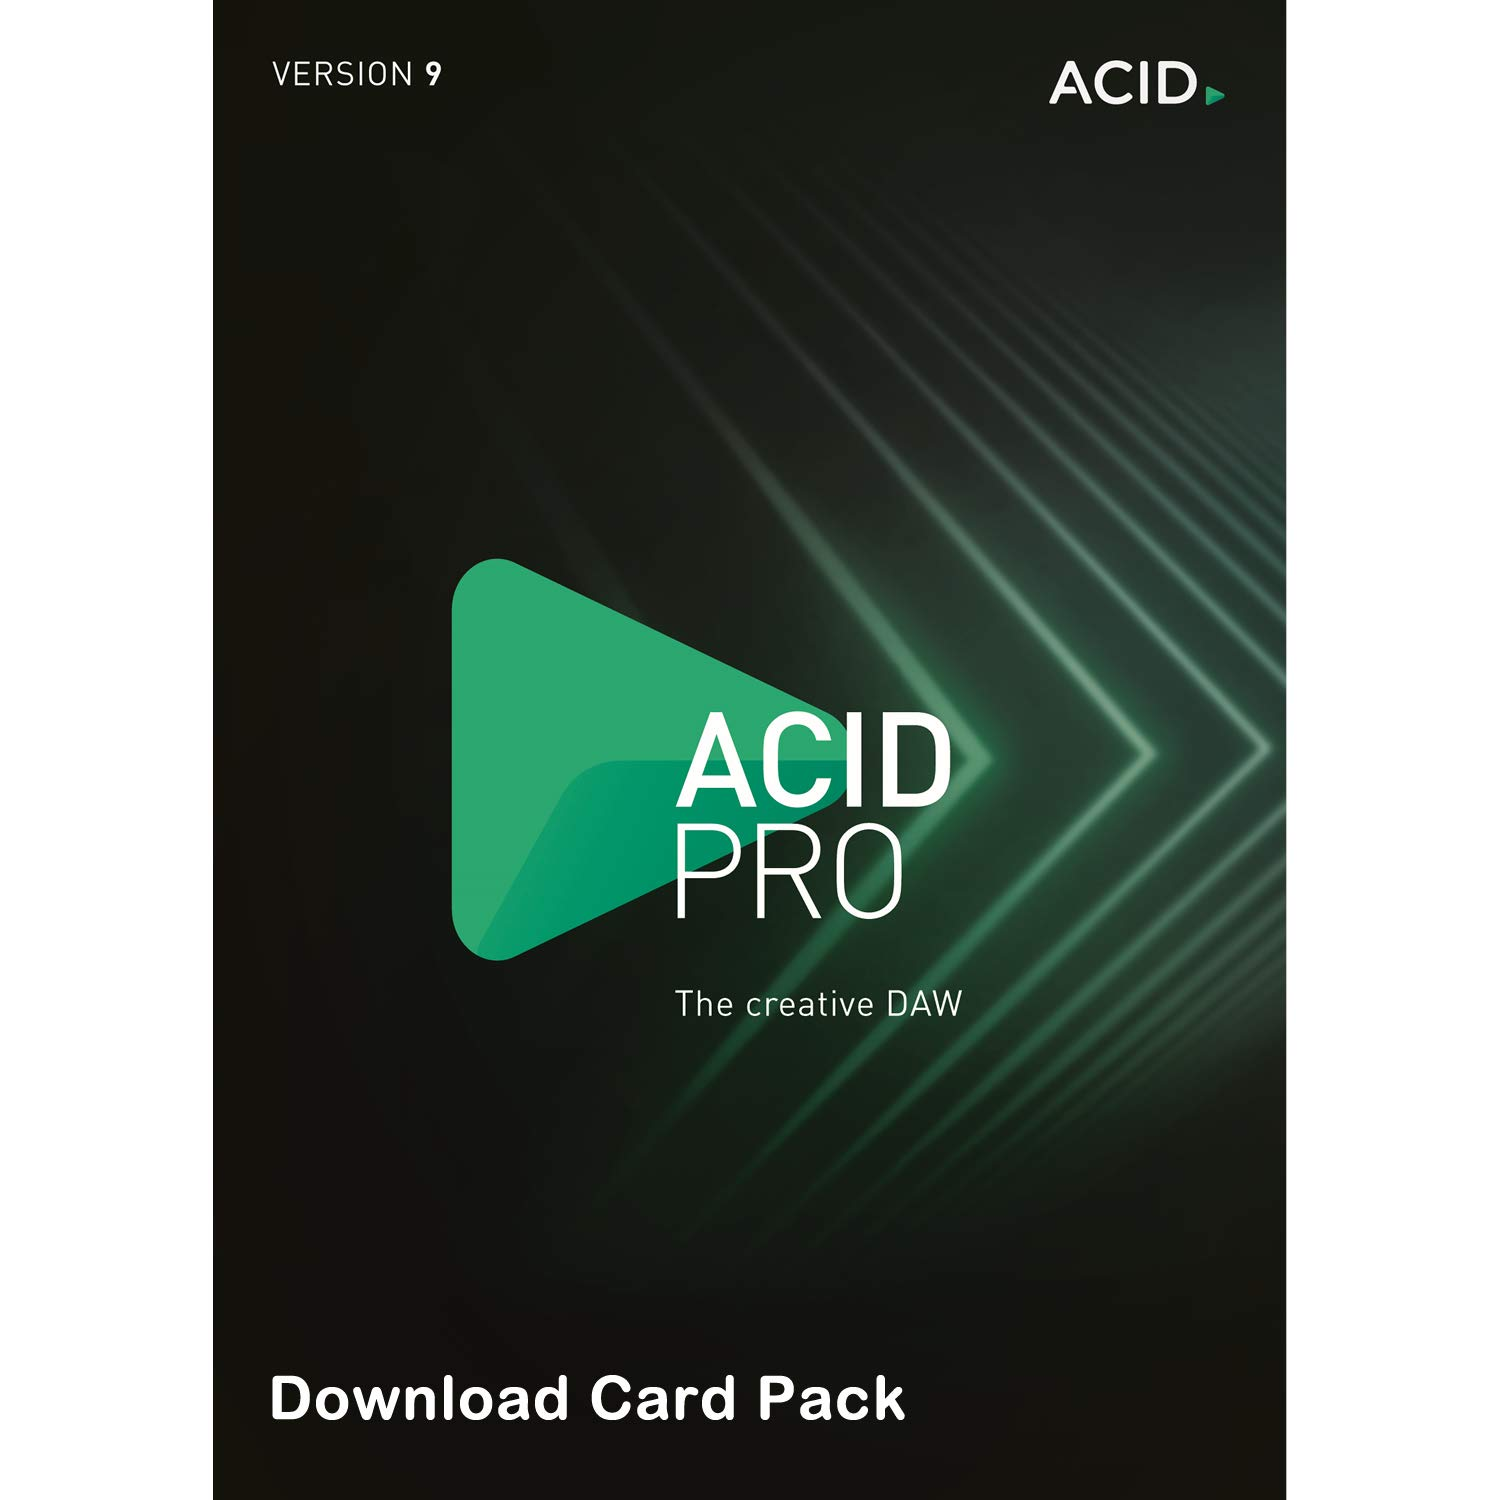 MAGIX Acid Pro 9 [Download Card] - Loop-Based Music Production, Powerful Multitrack Recording, Creative DAW by Magix-Genesis